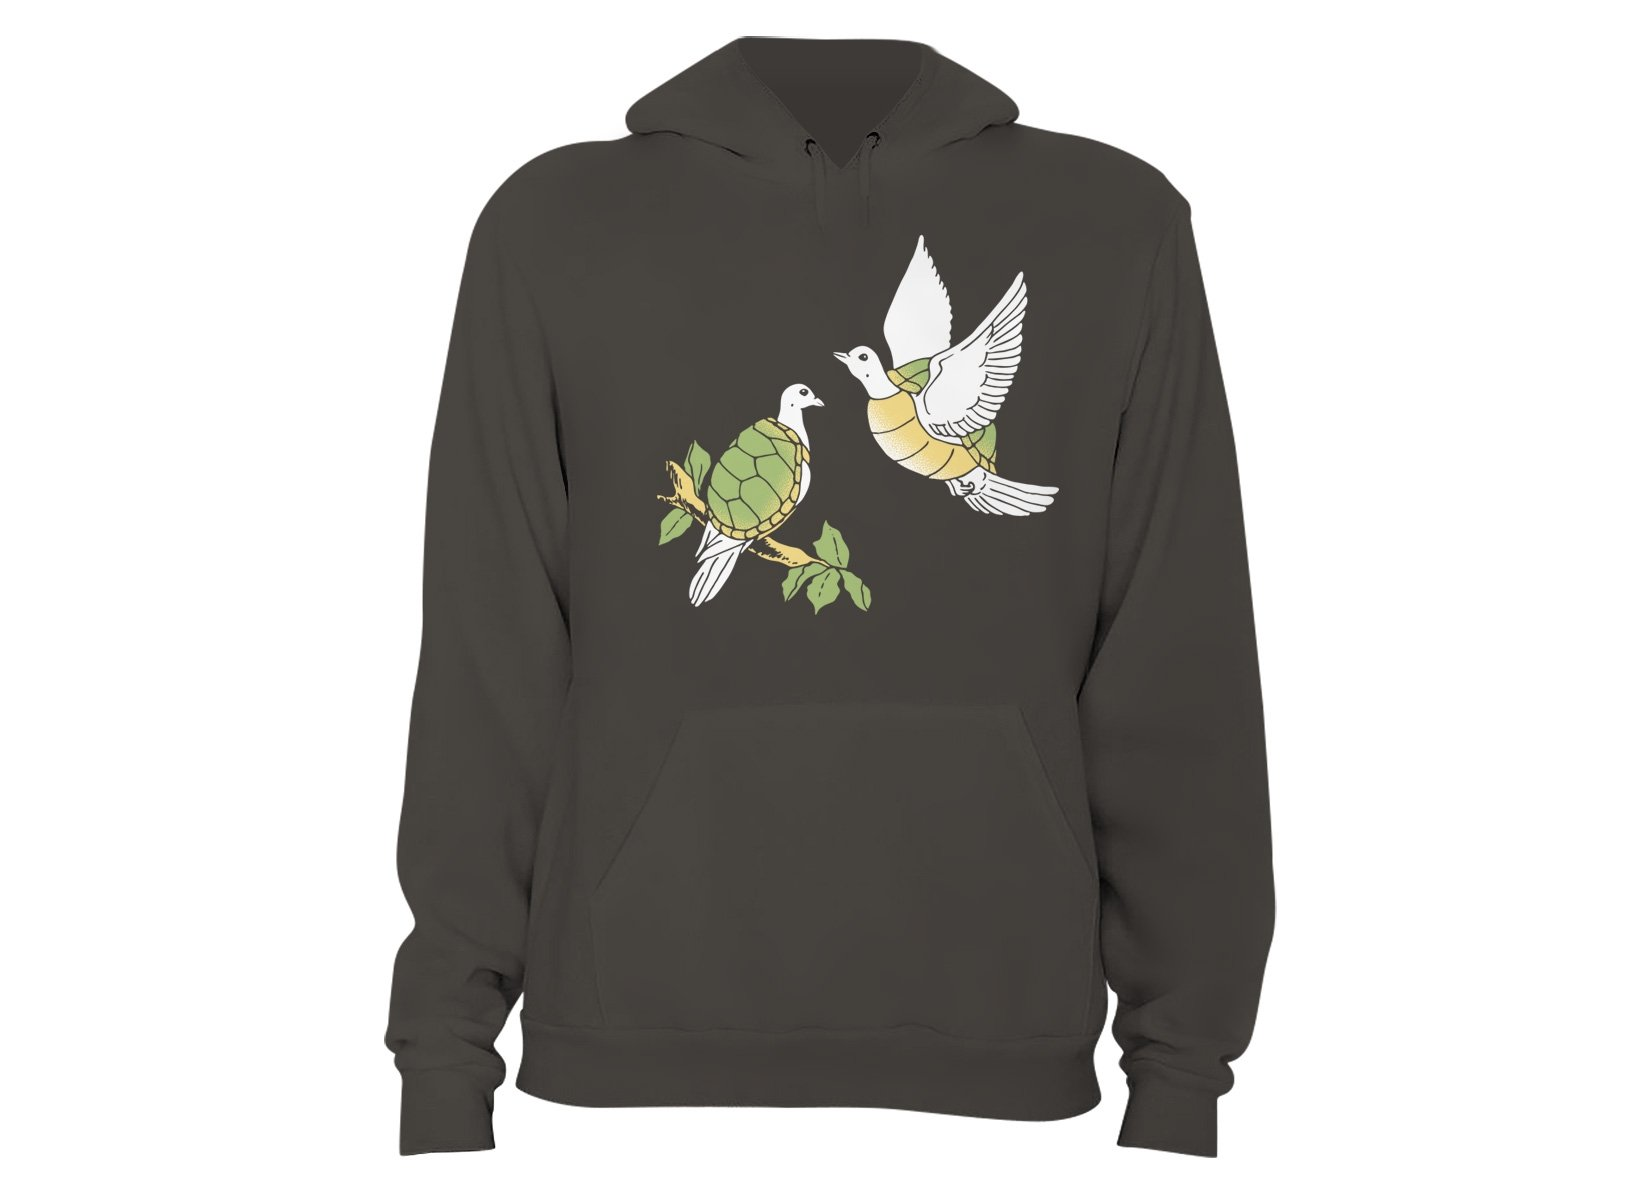 Two Turtle Doves on Hoodie